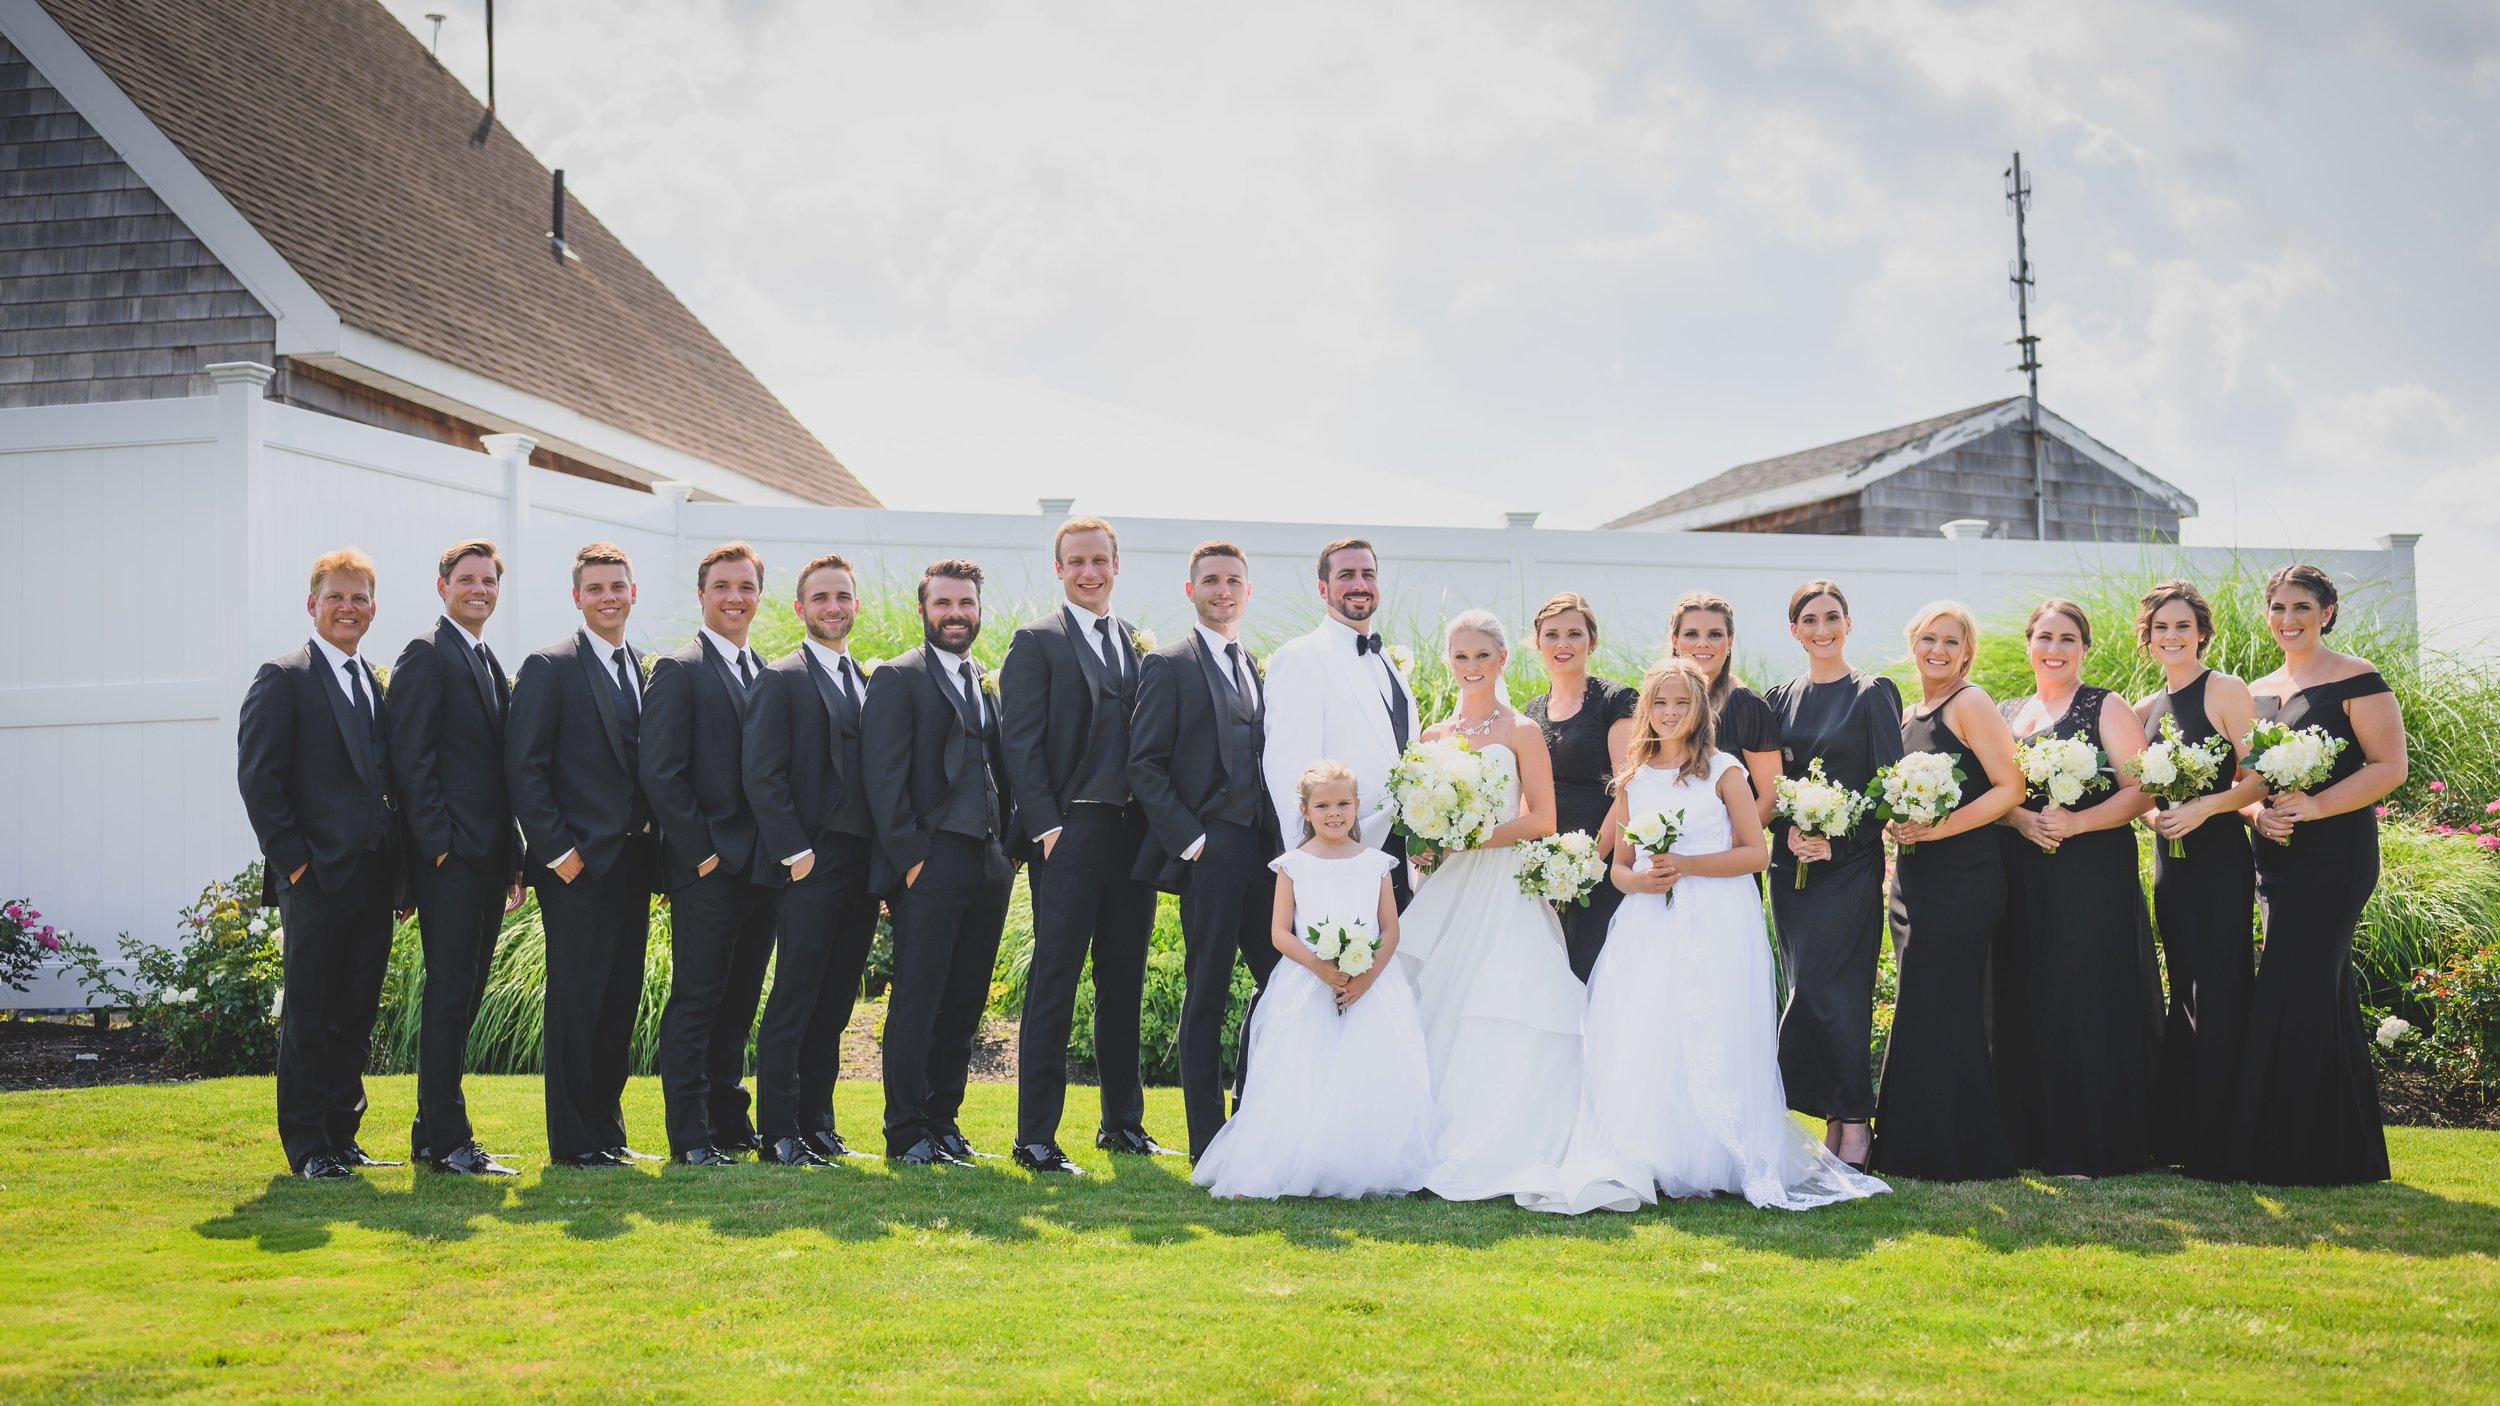 A smiling bridal party outdoors on a green lawn.